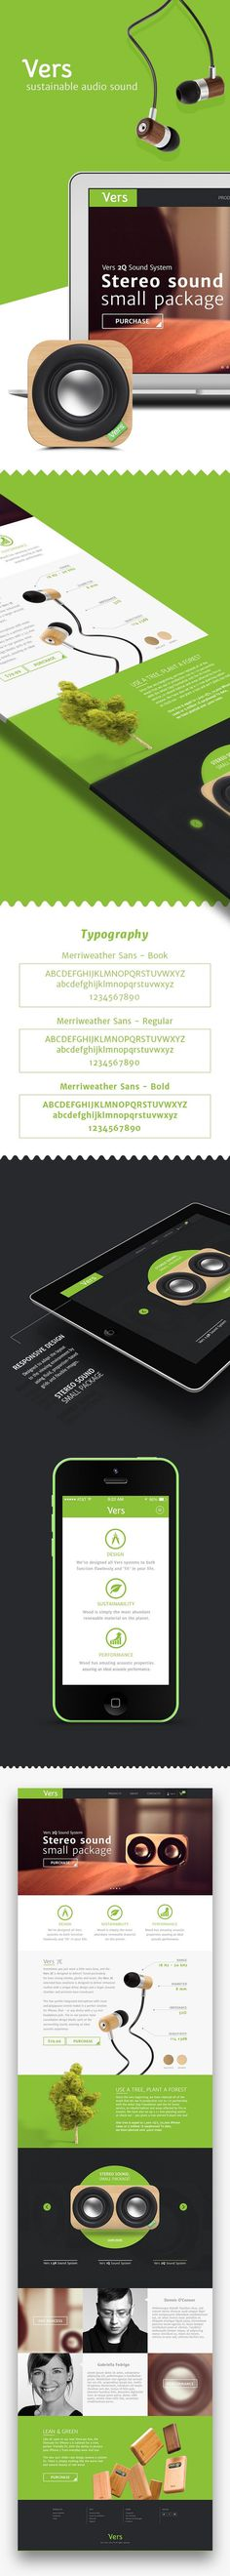 Vers Audio Website #web design #ui #ux